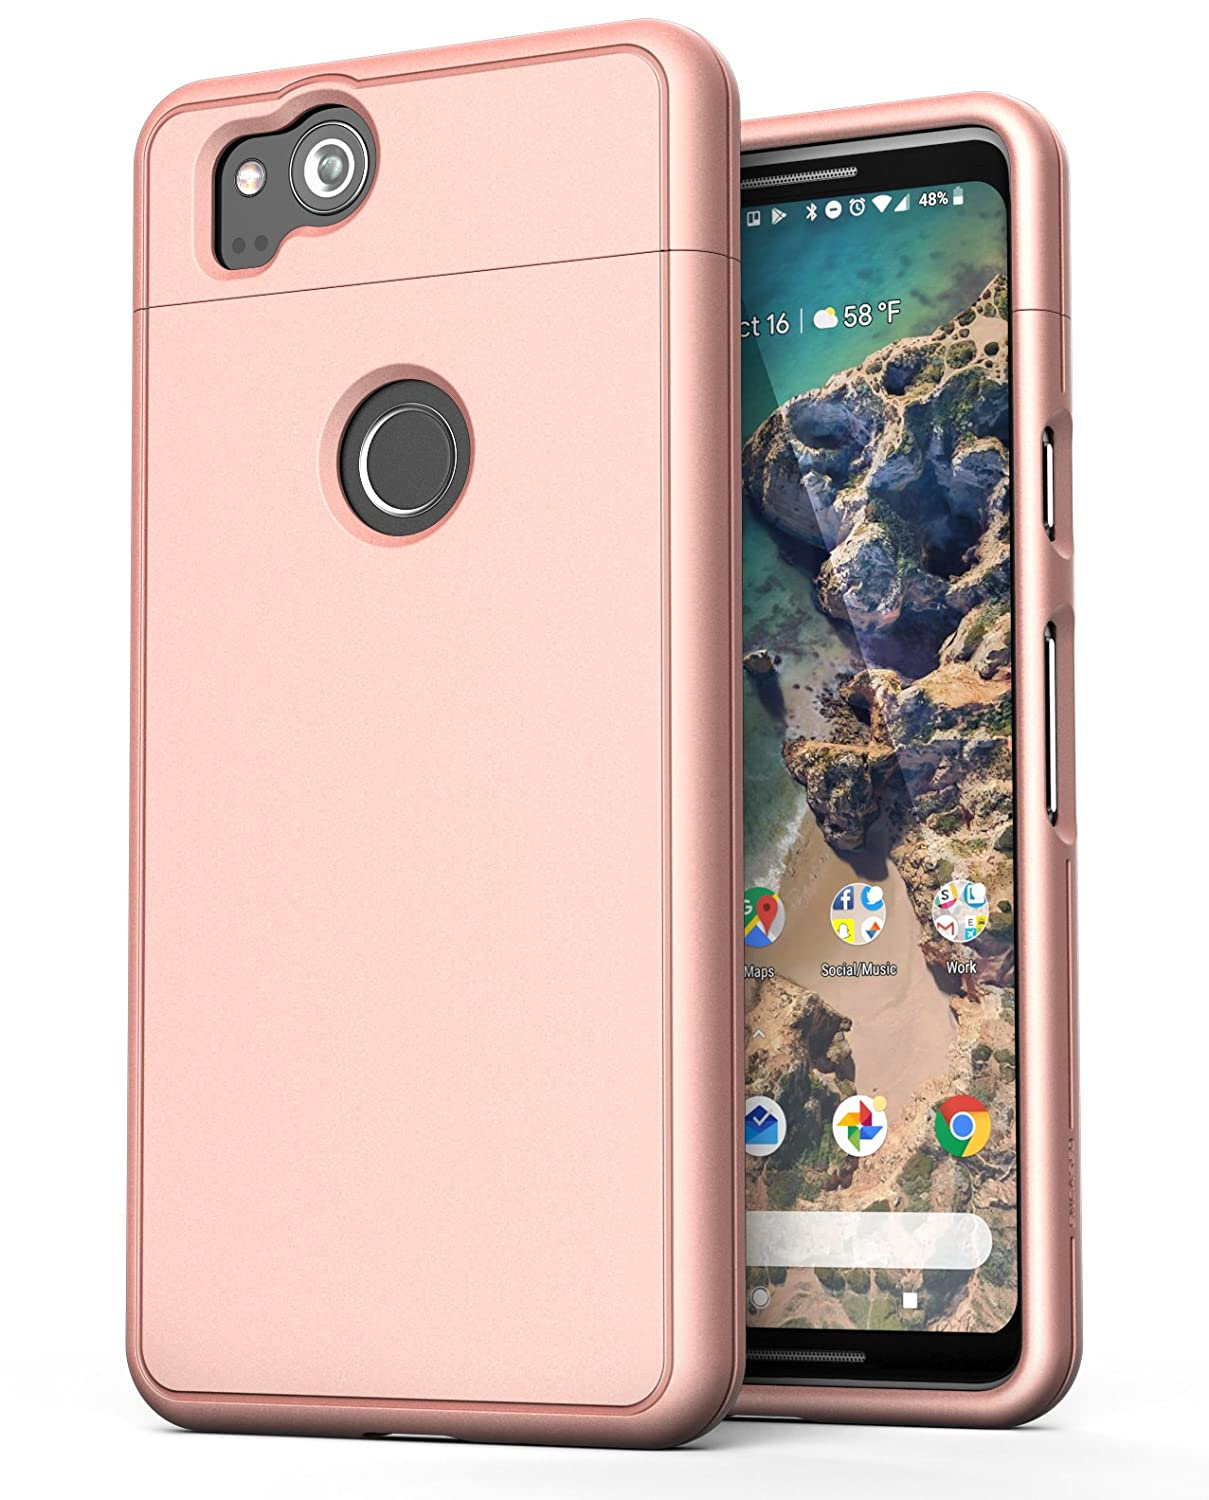 reputable site 3f95b 2be75 Google Pixel 2 XL Case Rose Gold - Encased (SlimShield Edition) Full  Coverage Protective Grip Cases for Google Pixel2 XL (2017)